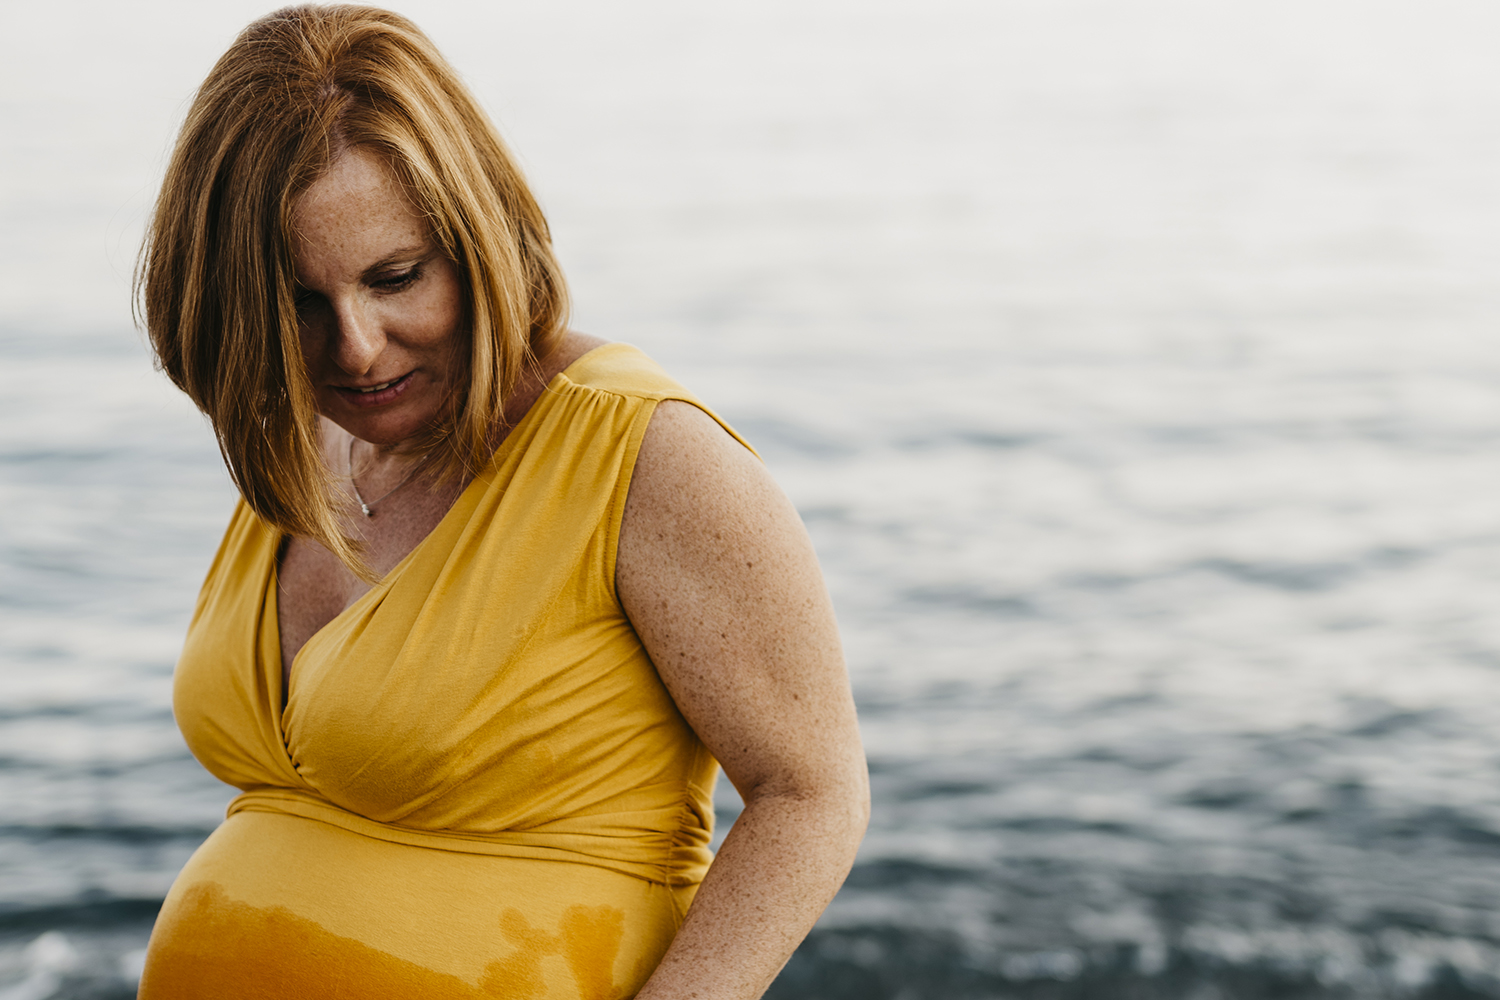 Maternity photographer in Deiva Marina, Italy.  Mom near the water. Rebecca Rinaldi Photography. Family lifestyle photographer in Italy.